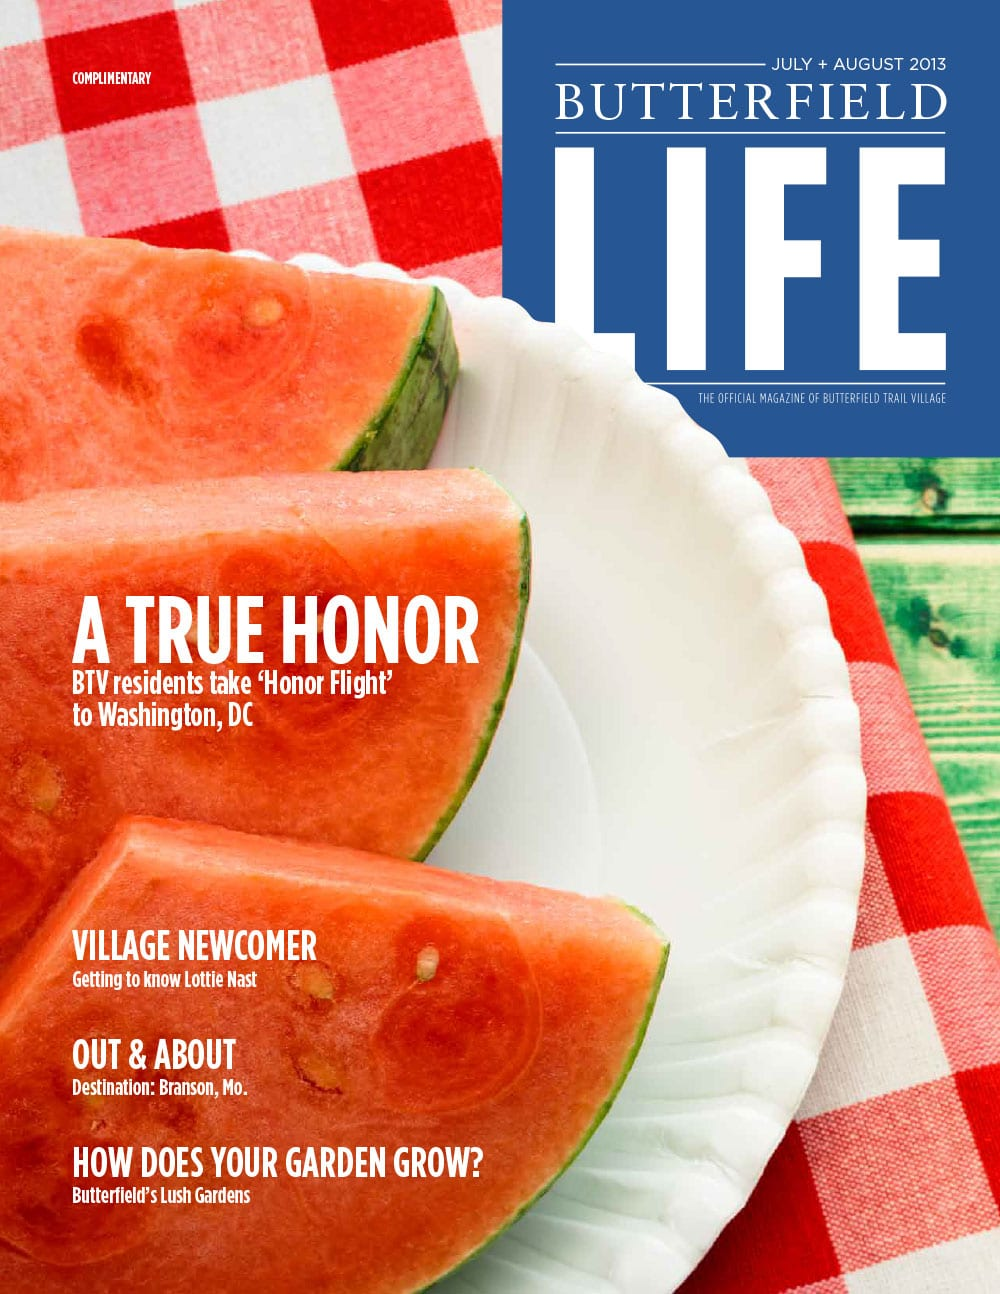 butterfield-life_july-aug2013-cover